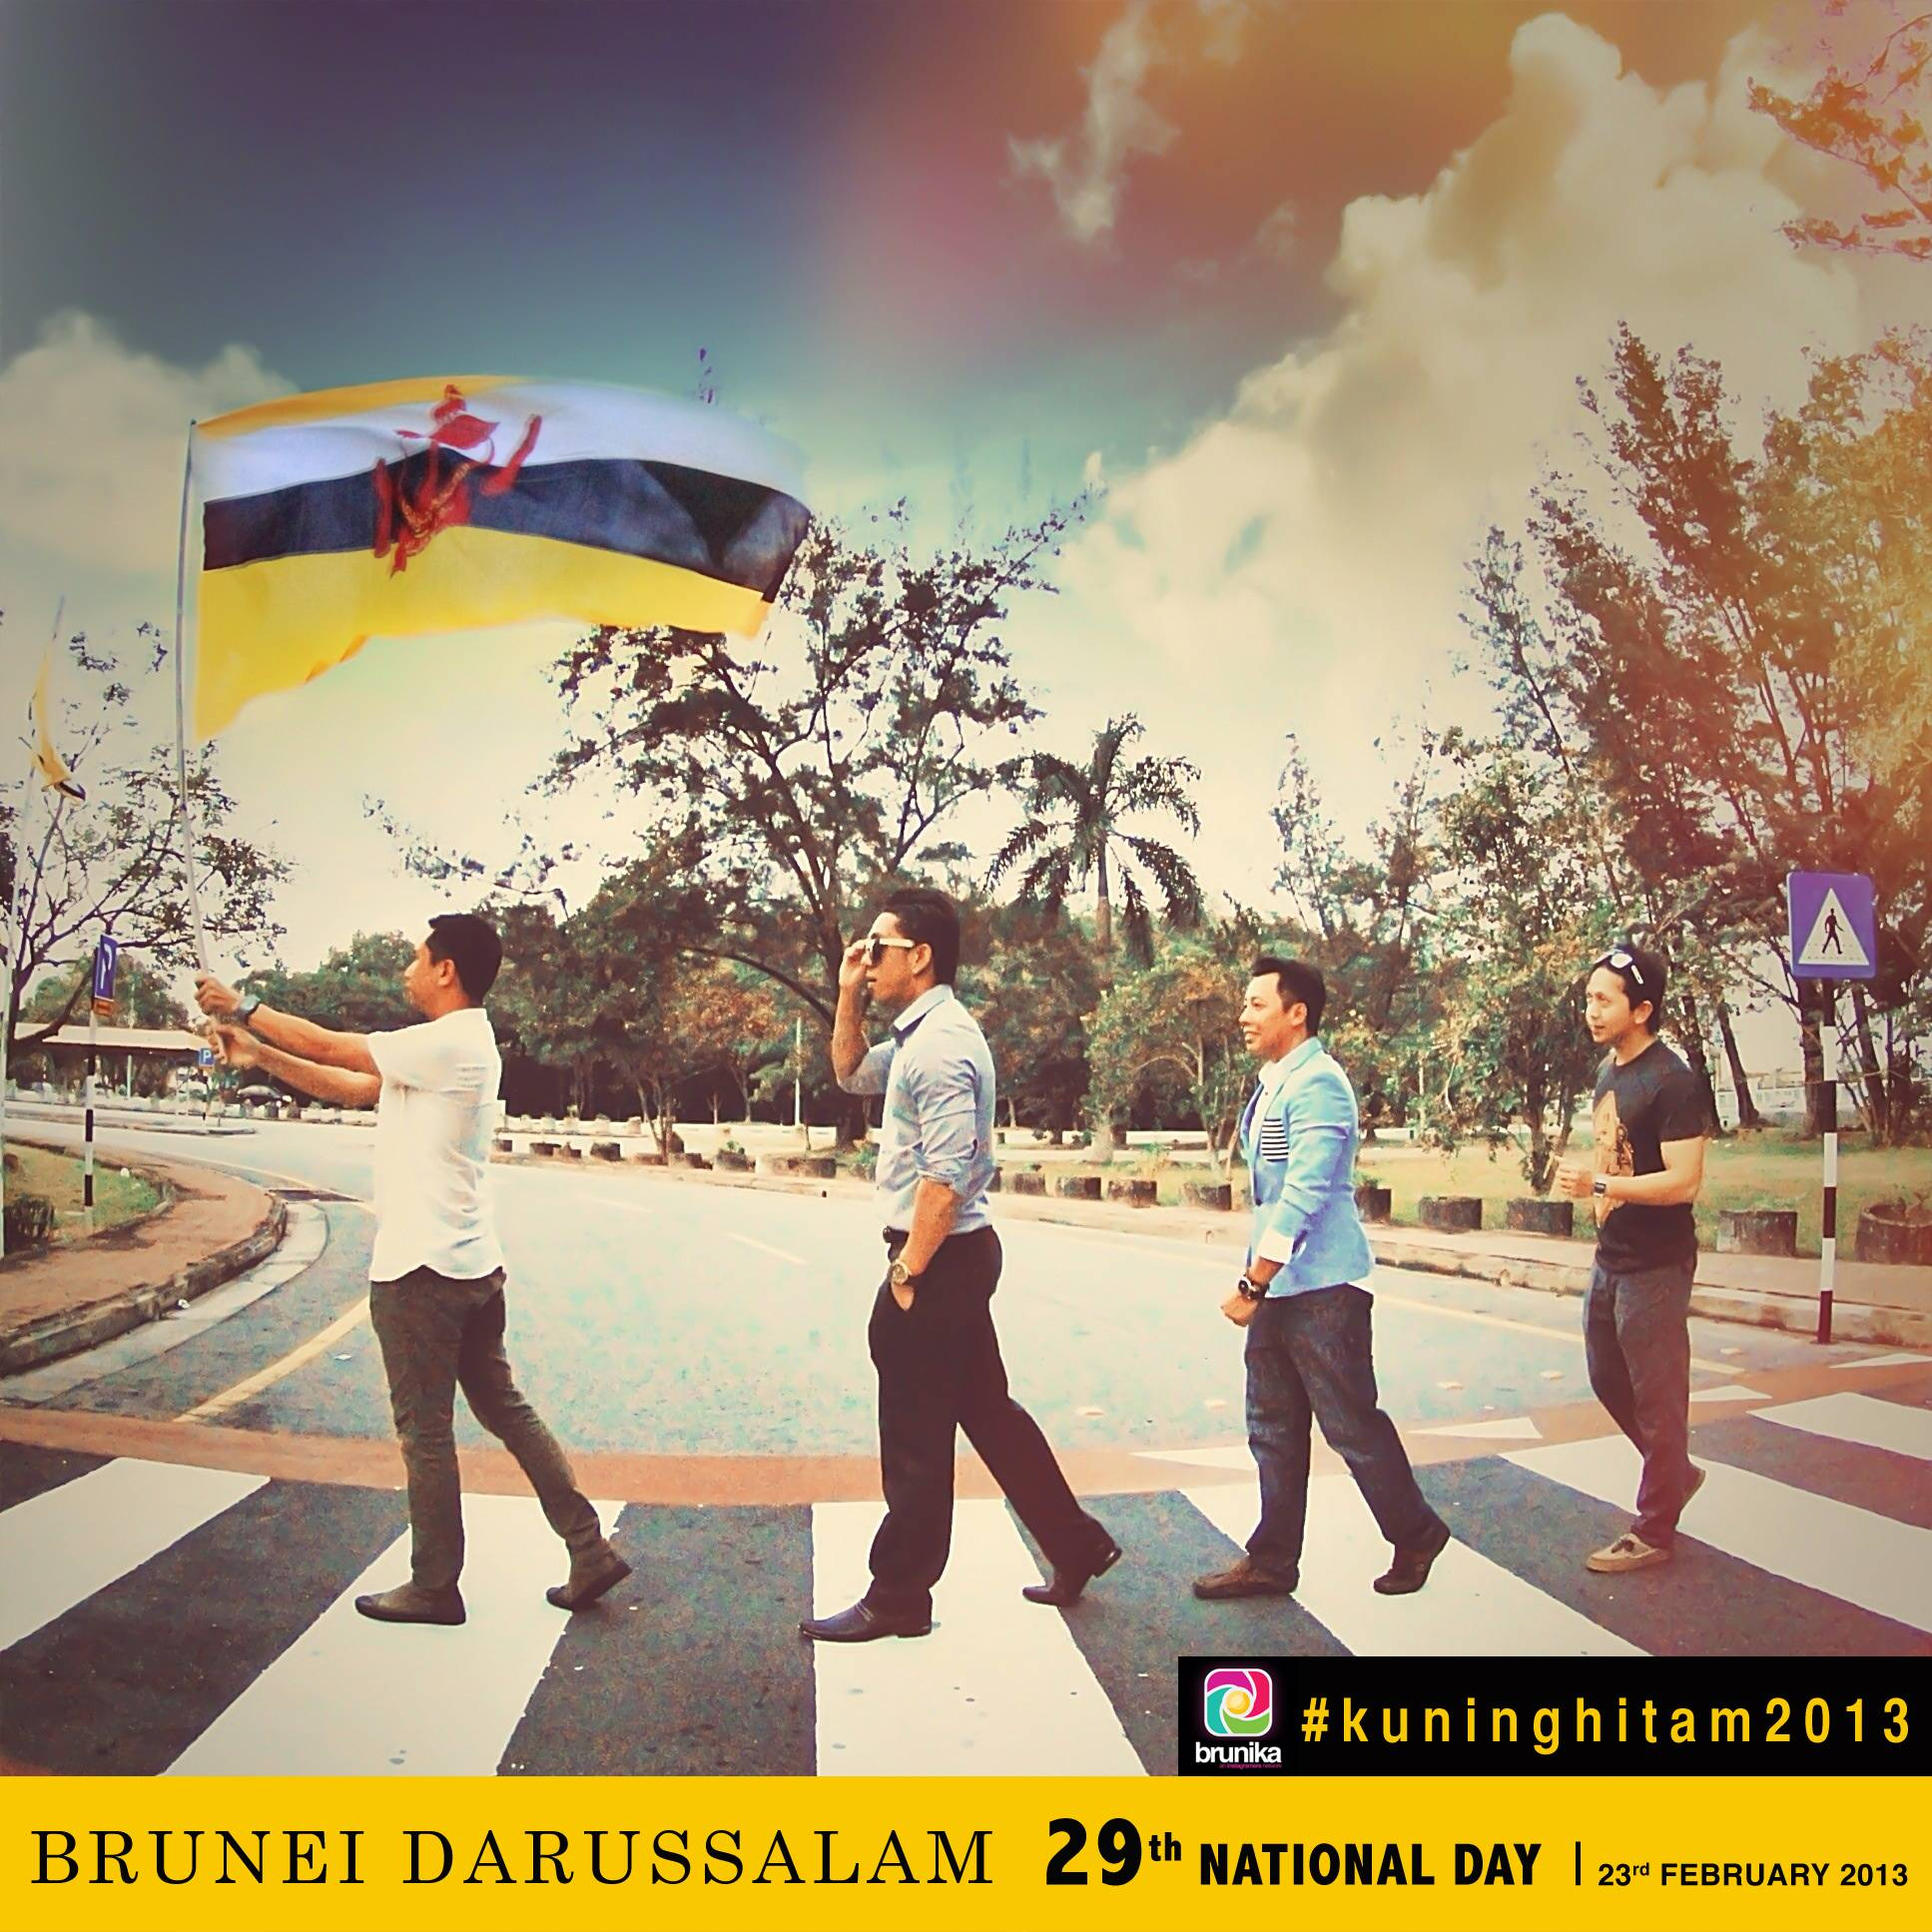 Brunei Darussalam's National Day on Instagram with our Instagramers Brunika Team